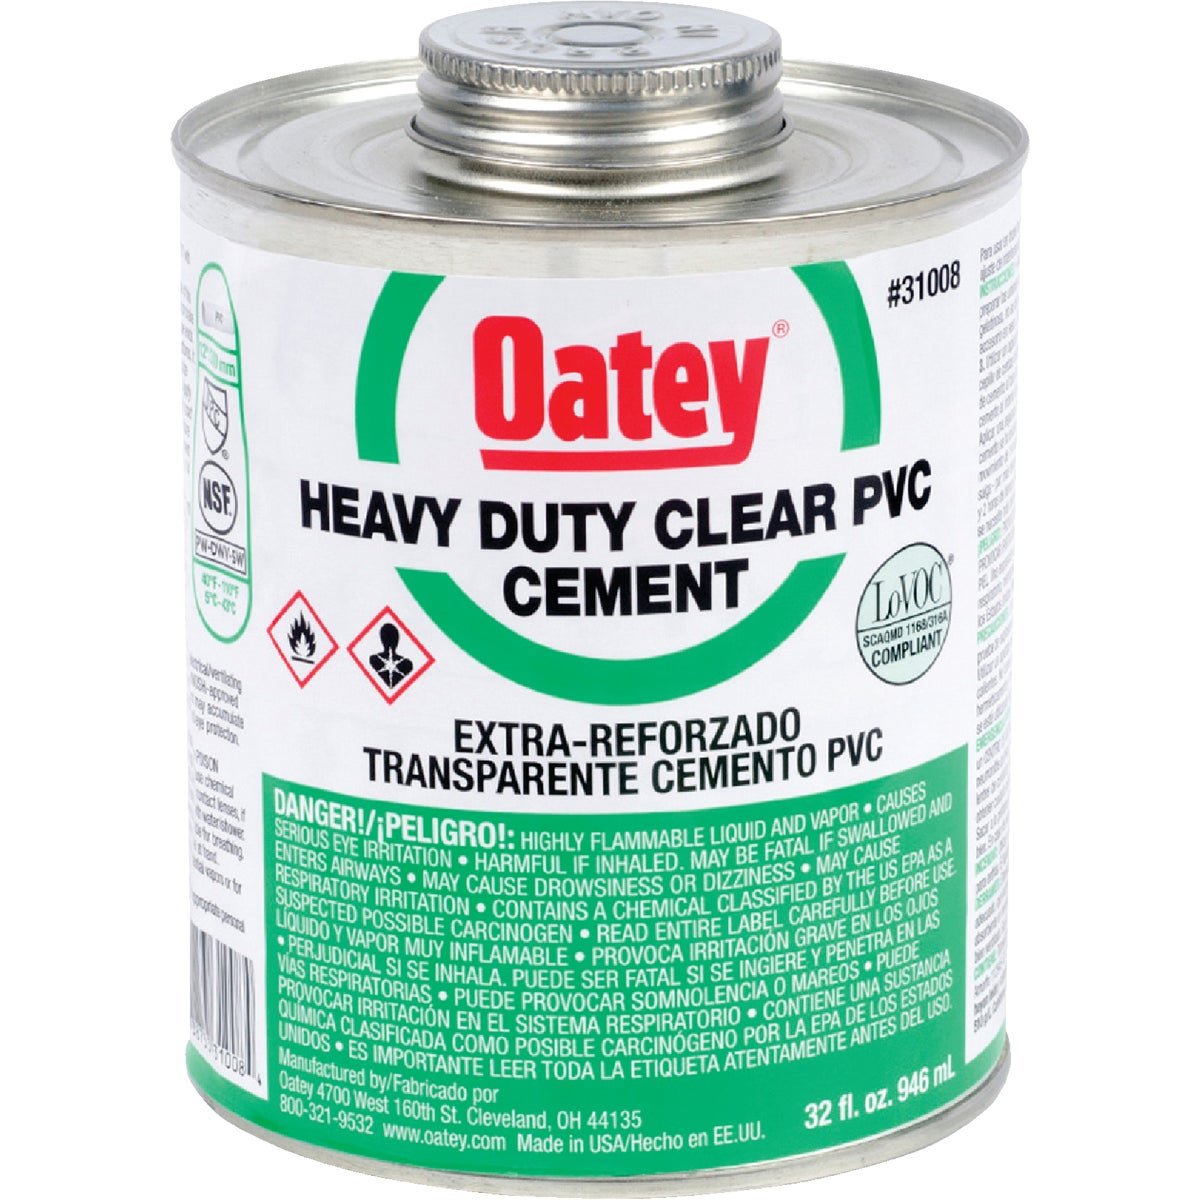 QUART H/DUTY CEMENT - 31008 by Oatey Scs